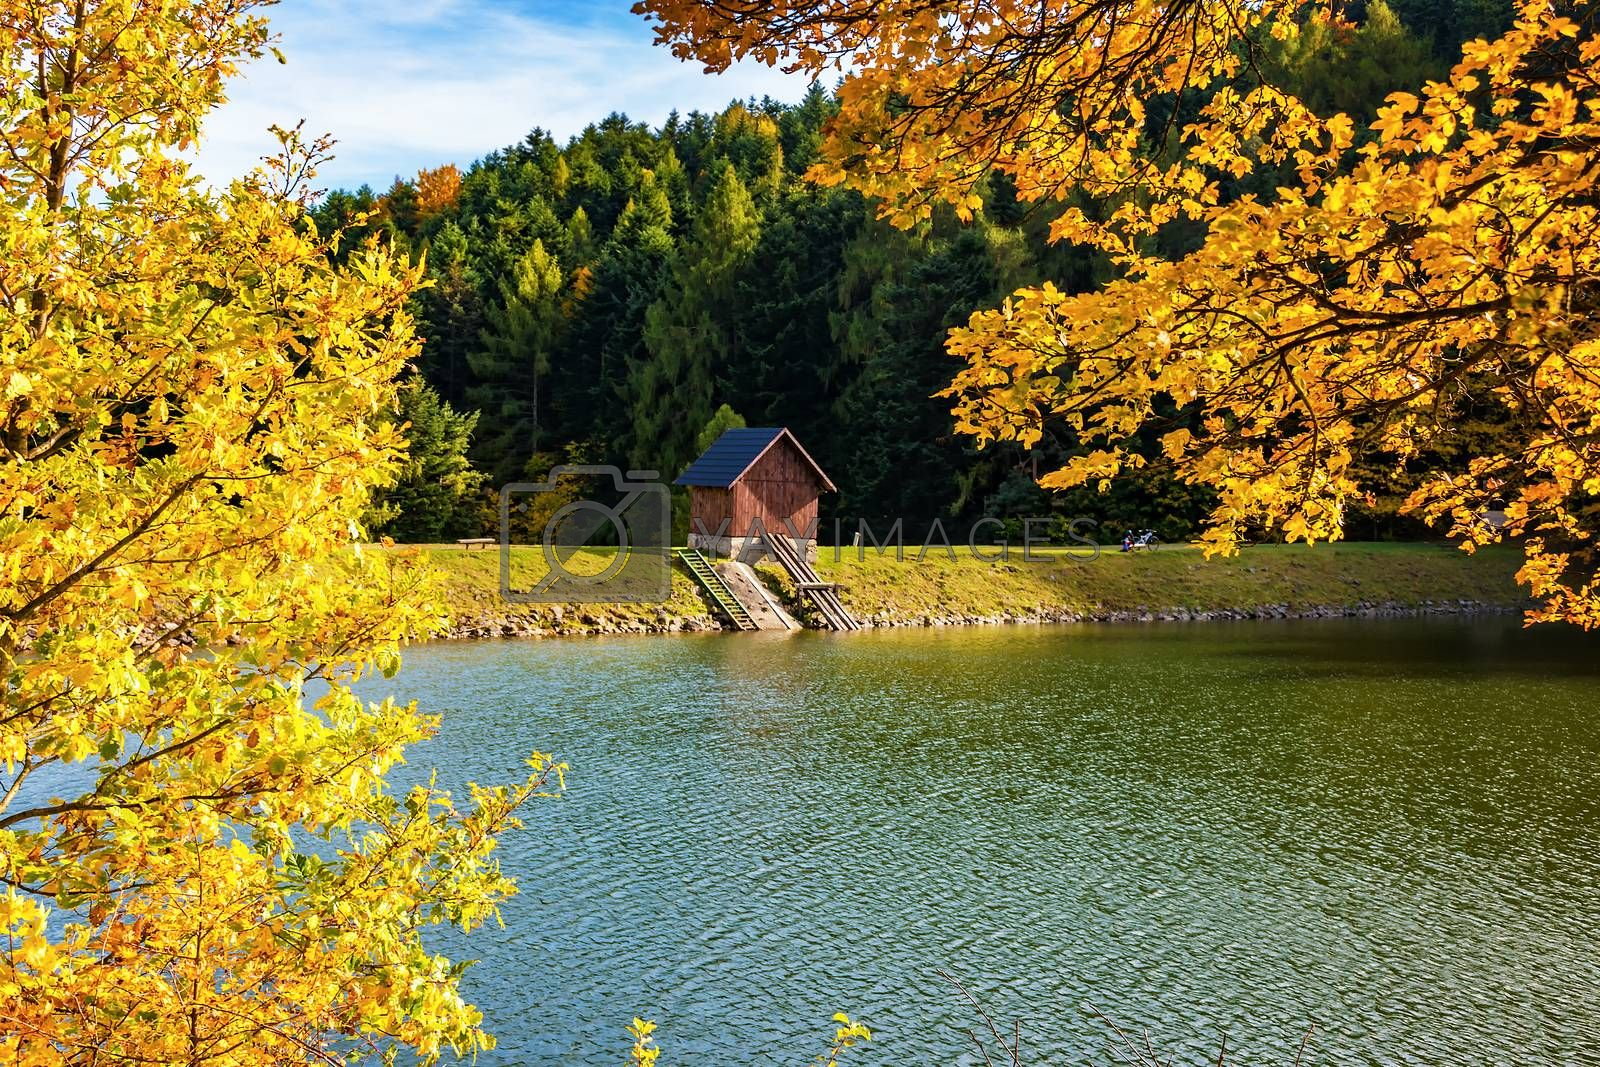 Beautiful view of small wooden house on bank of lake near forest during autumn